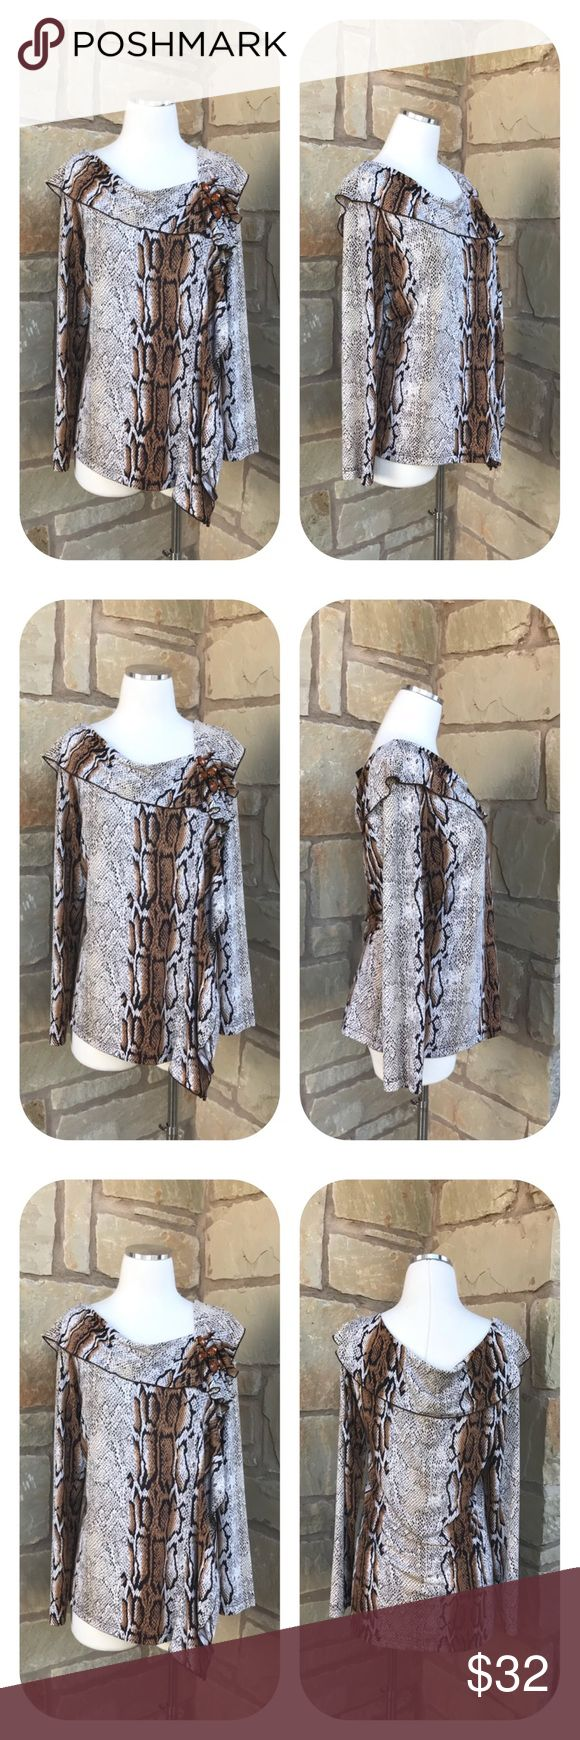 """Mishca Long Sleeve Animal Print Embellished Blouse Mishca Animal Print Long Sleeve Blouse Size M  -  Long Sleeve -  Beautiful Stone Detail on Front -  96% Polyester 4% Spandex -  Size M     Armpit to armpit 18""""     Armpit to end of sleeve 20""""     Shoulder to hem 27""""  Thanks for visiting! ❤️ Mishca Tops Blouses"""